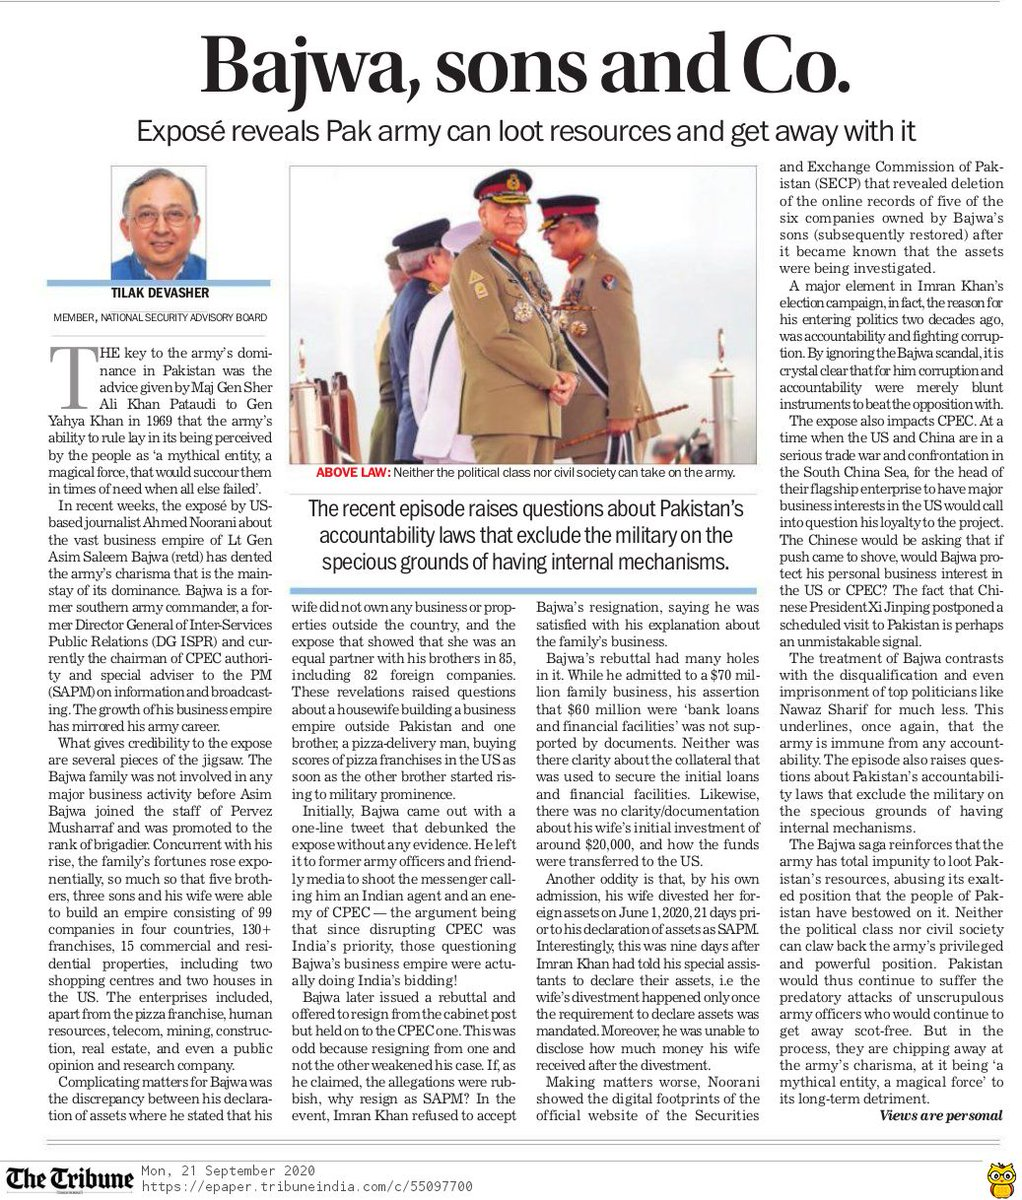 Two interesting opeds yesterday. The first talks about the unearthing of a huge web of corruption of Pakistan Army Chief Bajwa and its implications. The second traces the psychological trauma of Xi Jinping as a young man and its reflections on his politics.